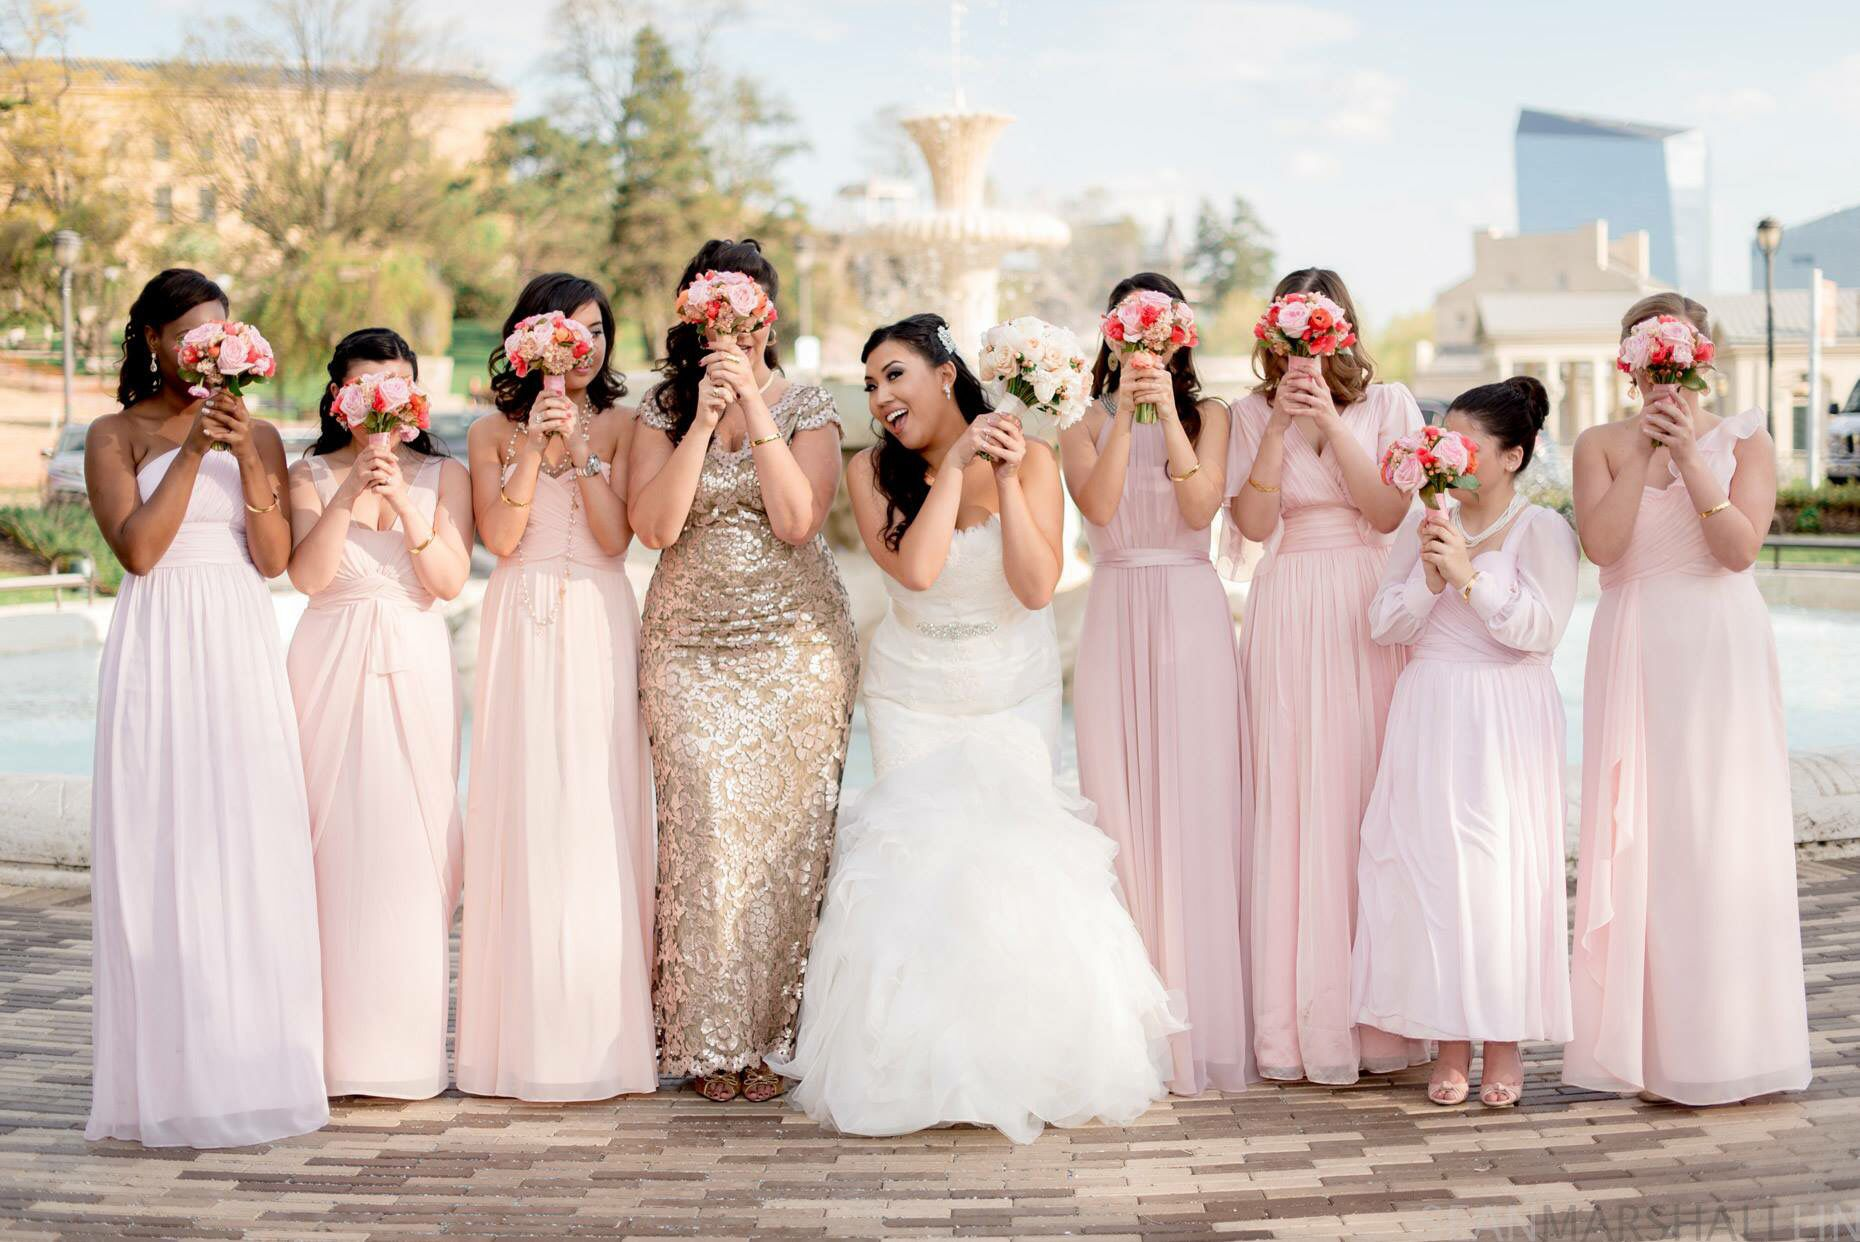 Blush and gold wedding bridal party philadelphia wedding blush and gold wedding bridal party philadelphia wedding mismatched bridesmaids dresses ombrellifo Image collections